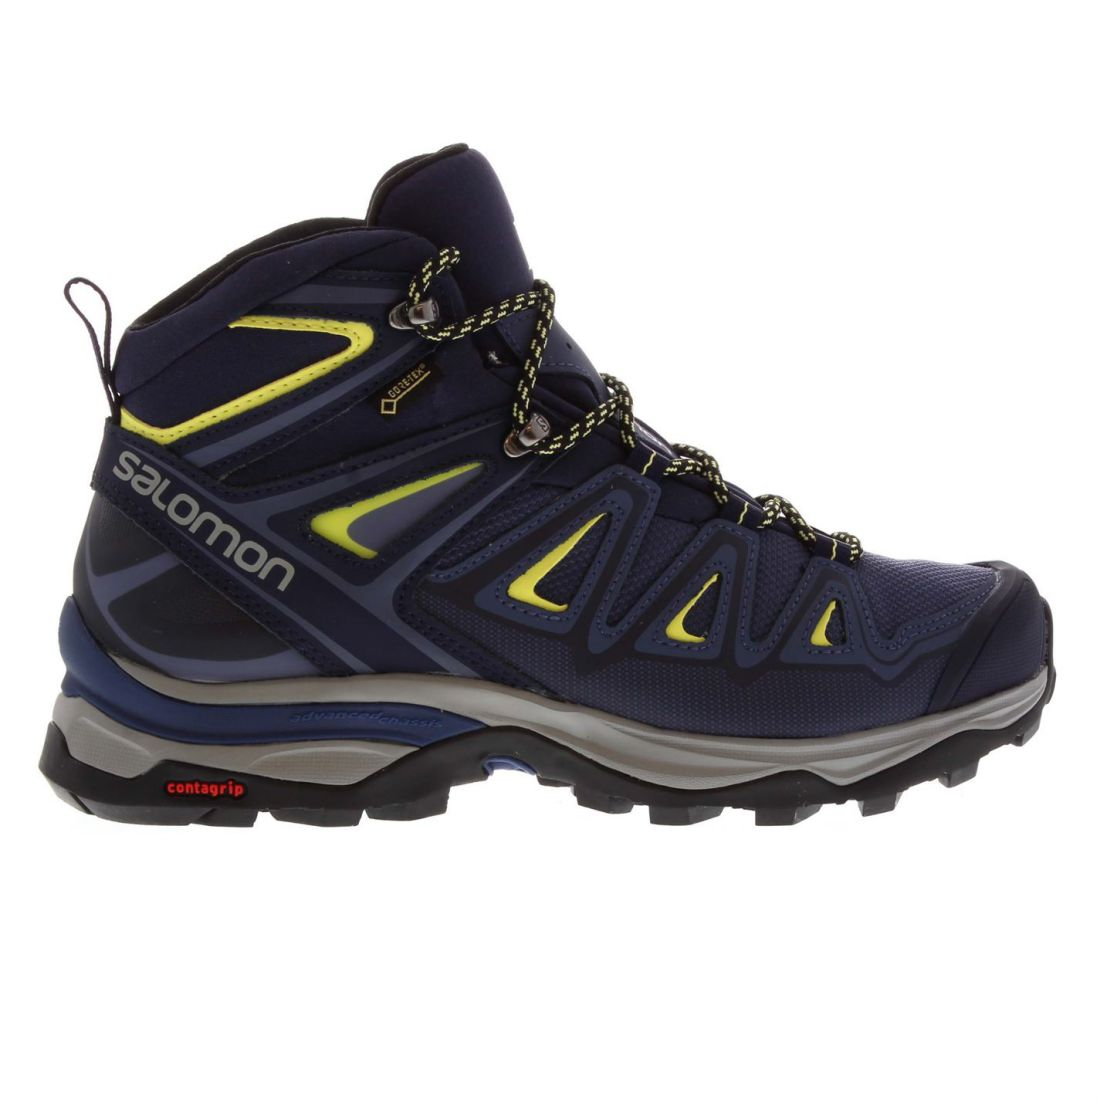 Salomon XUltra 3 M GTX  Walking shoes Ladies Boots Laces Fastened Padded Ankle  cheap wholesale